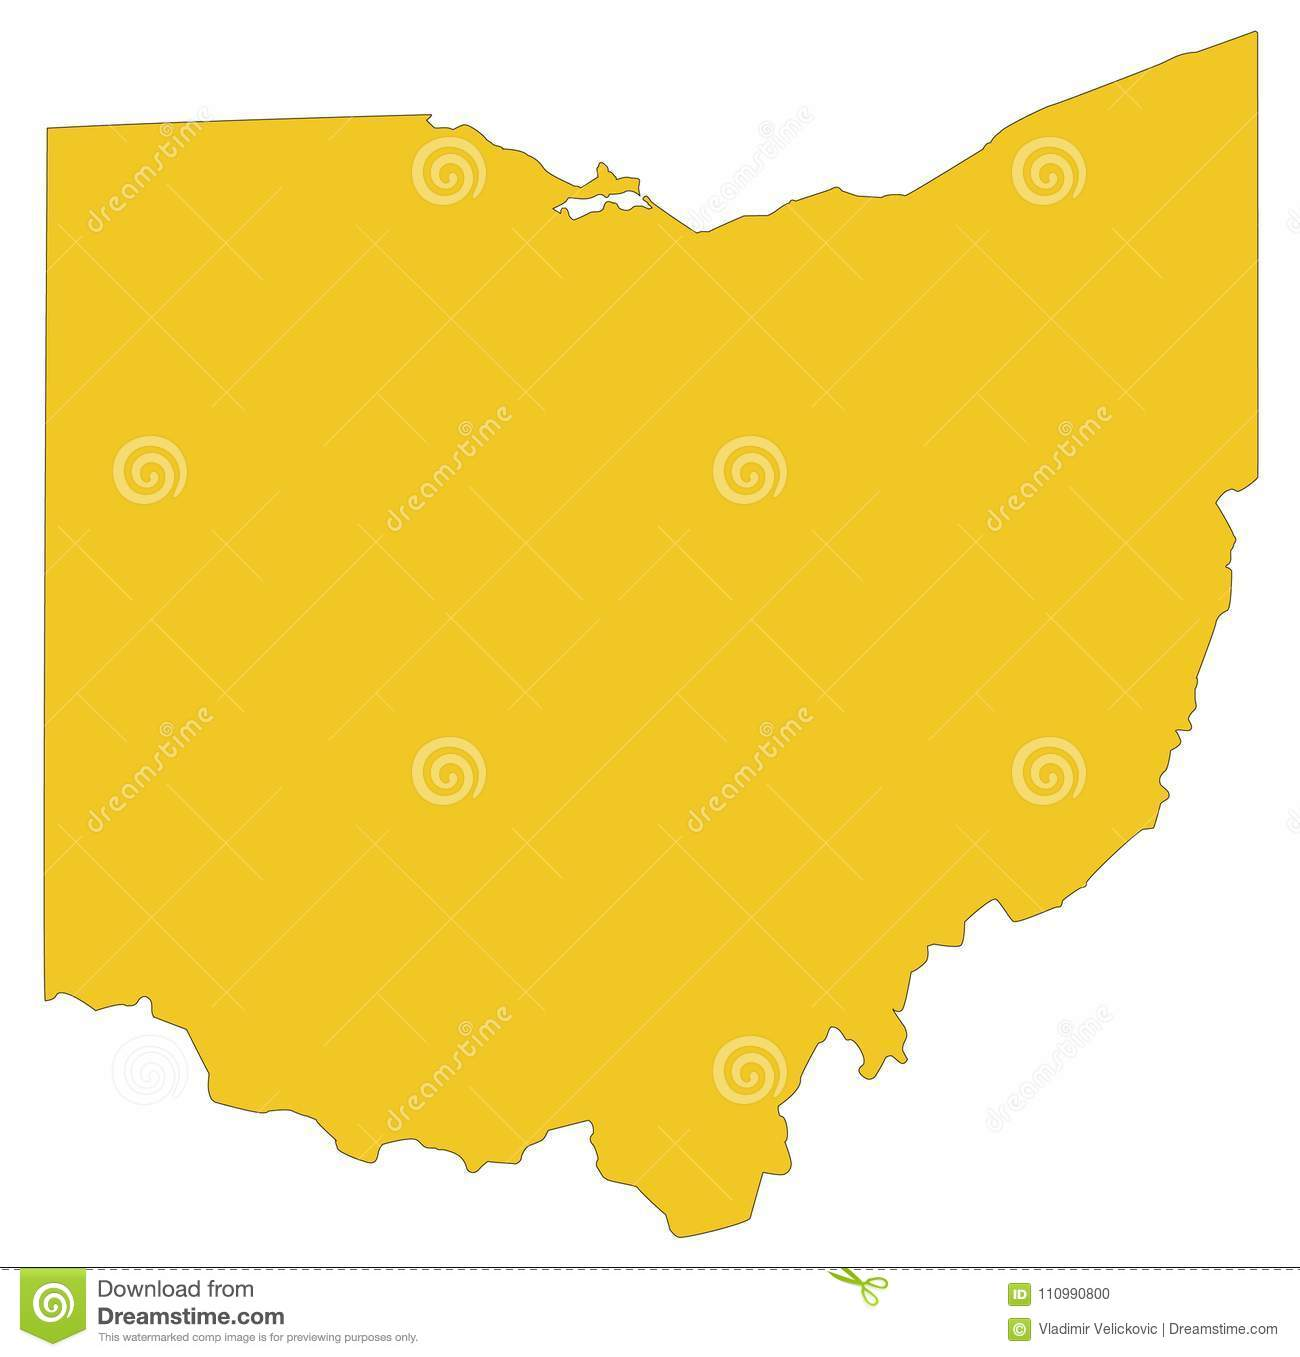 ohio map midwestern state in the great lakes region of the united